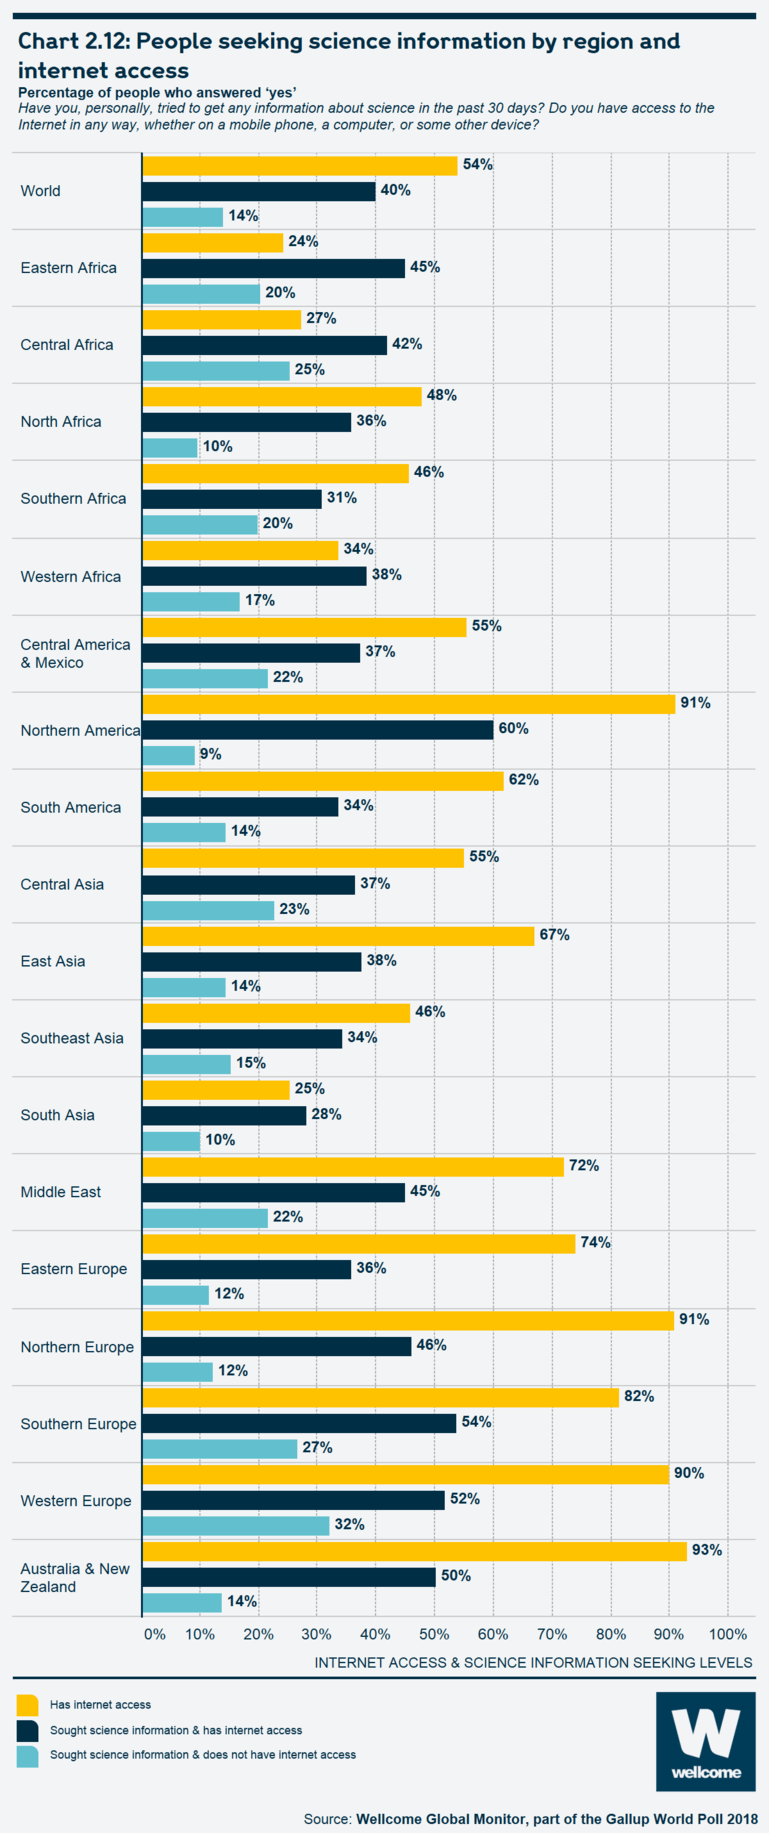 Chart 2.12: People seeking science information by region and internet access